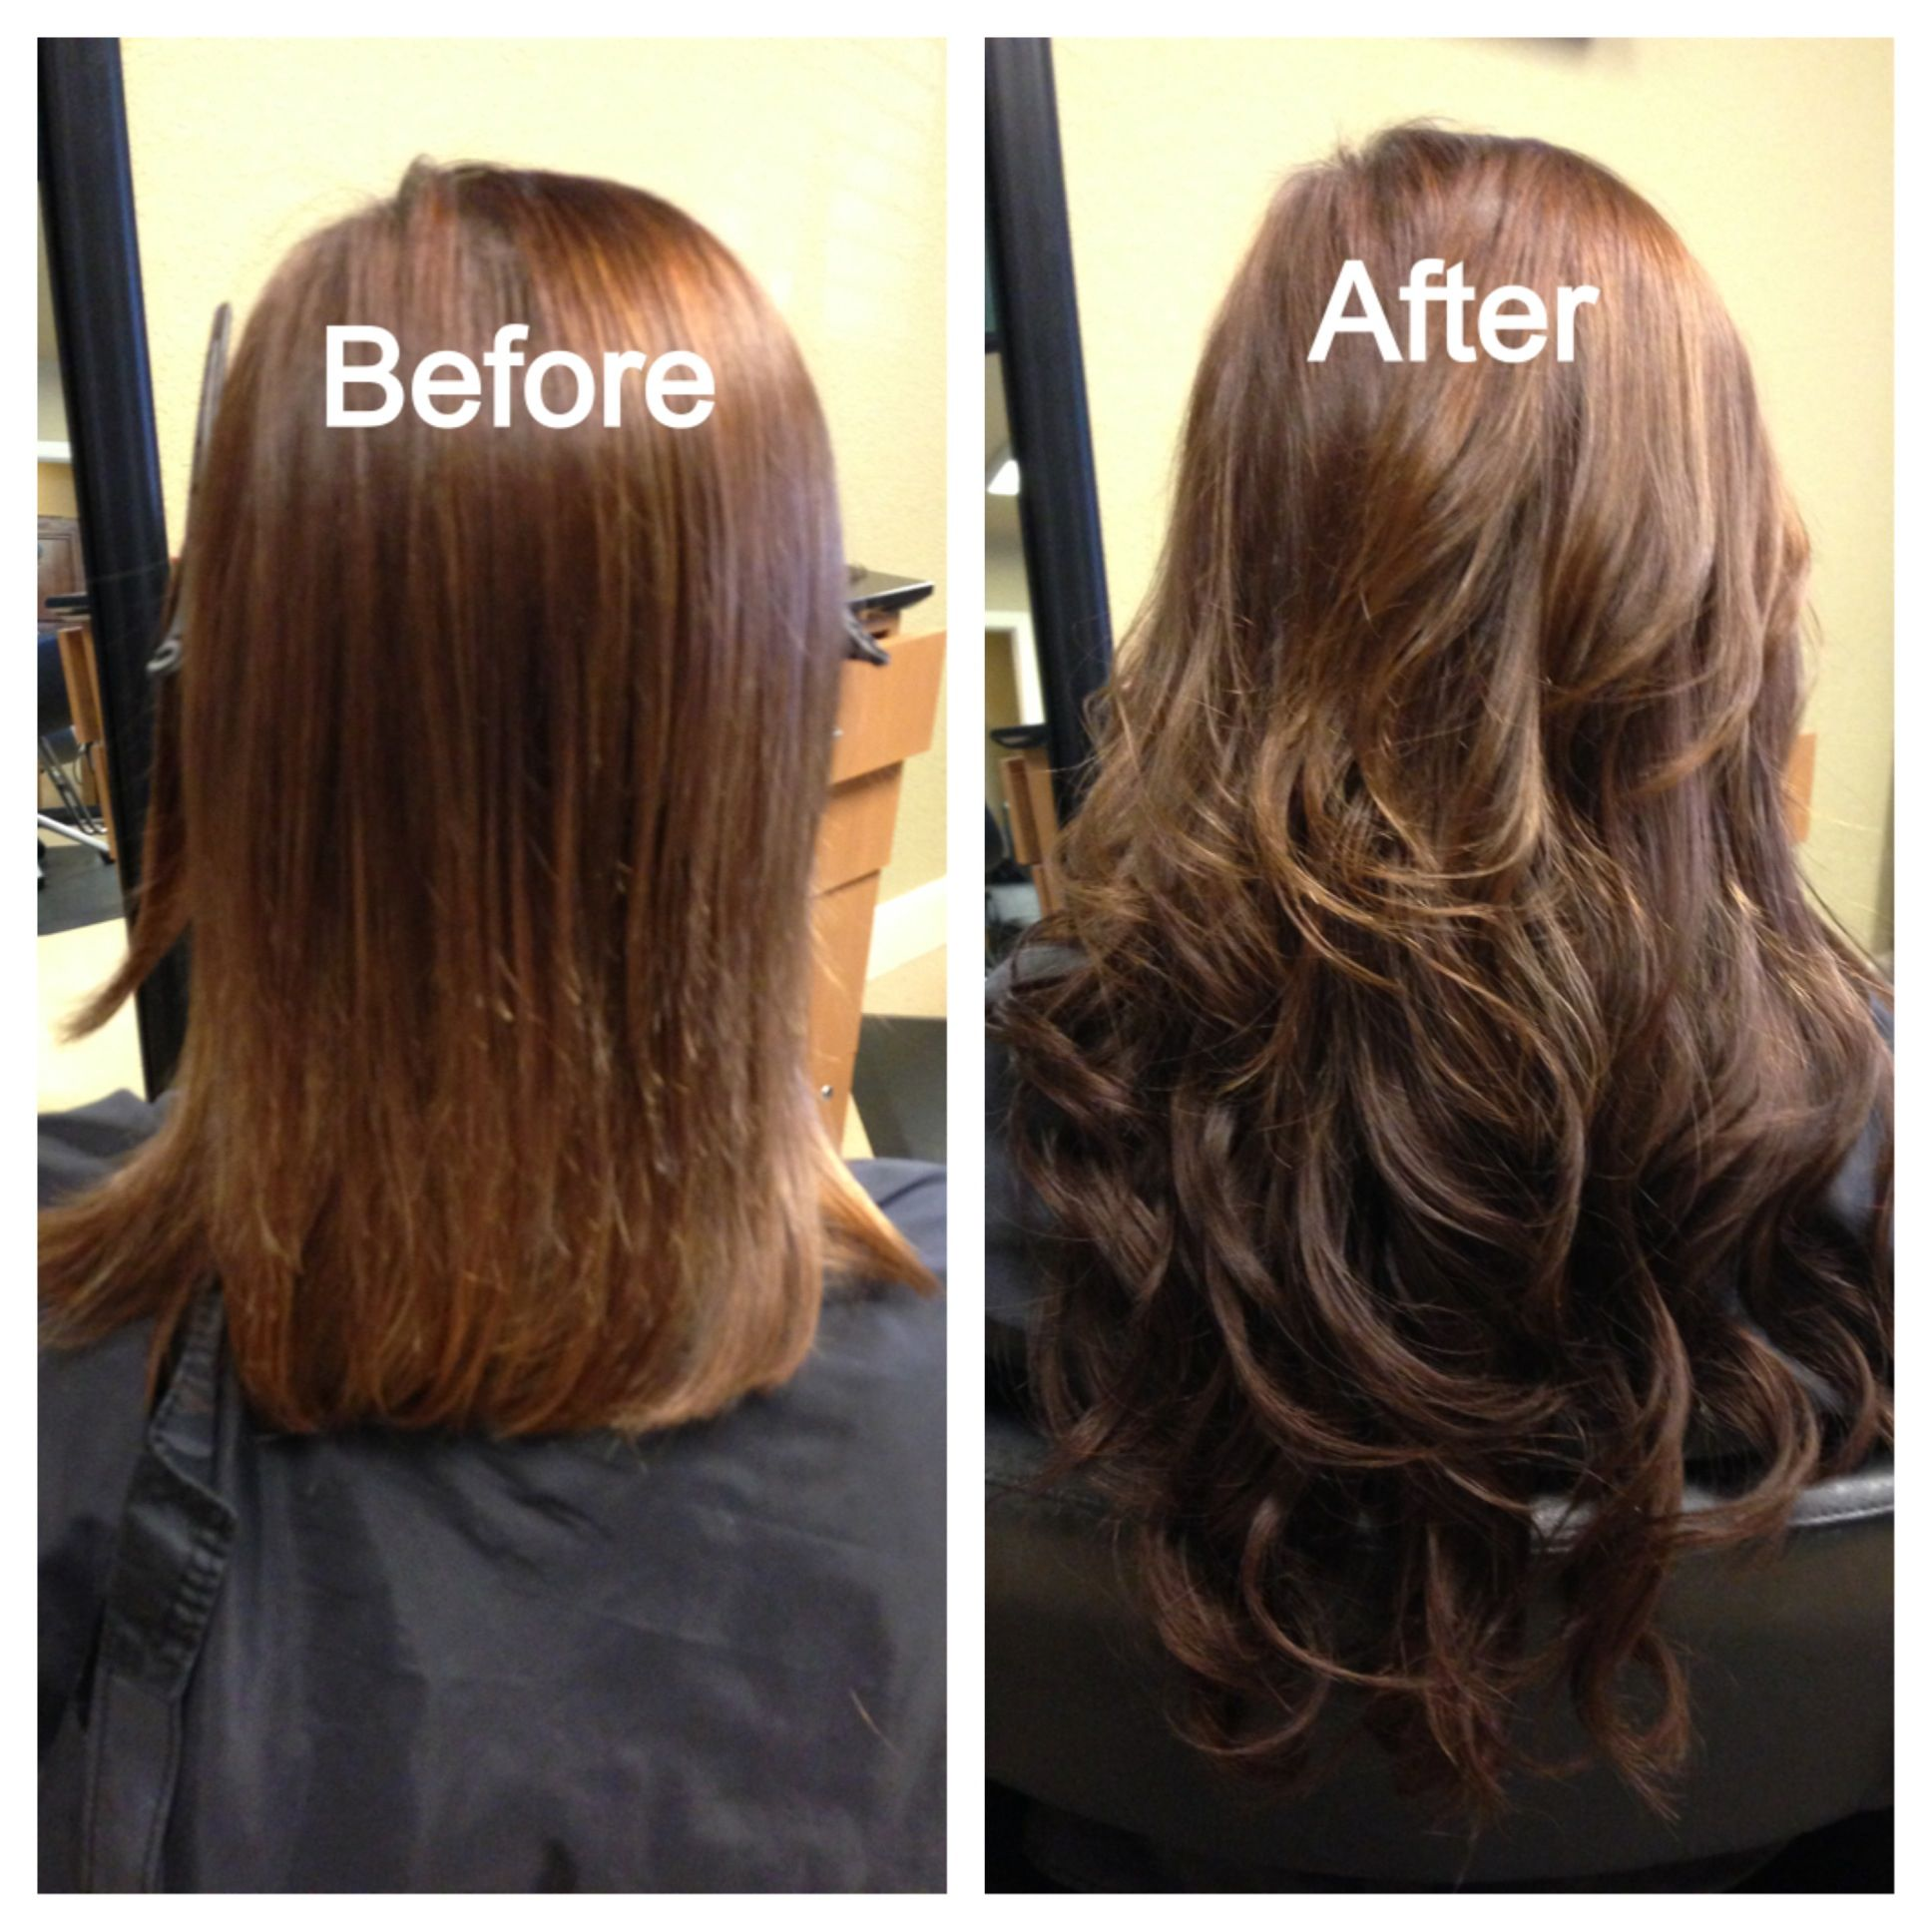 socap fusion hair extension before/after. 100% human remy